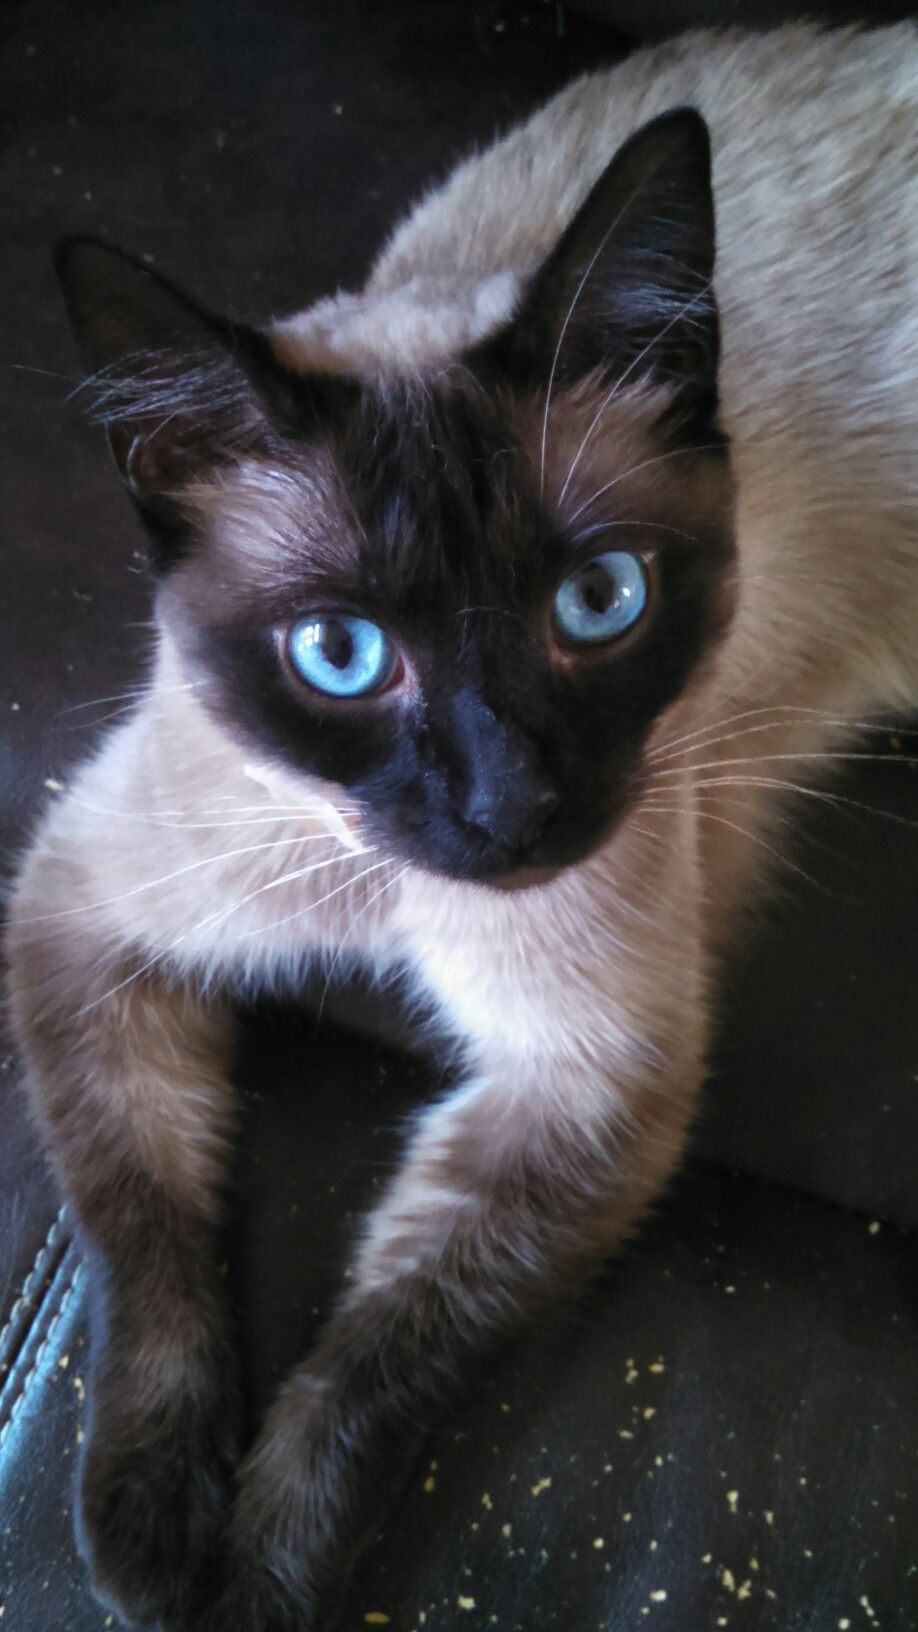 best images and photos ideas about siamese cat - most